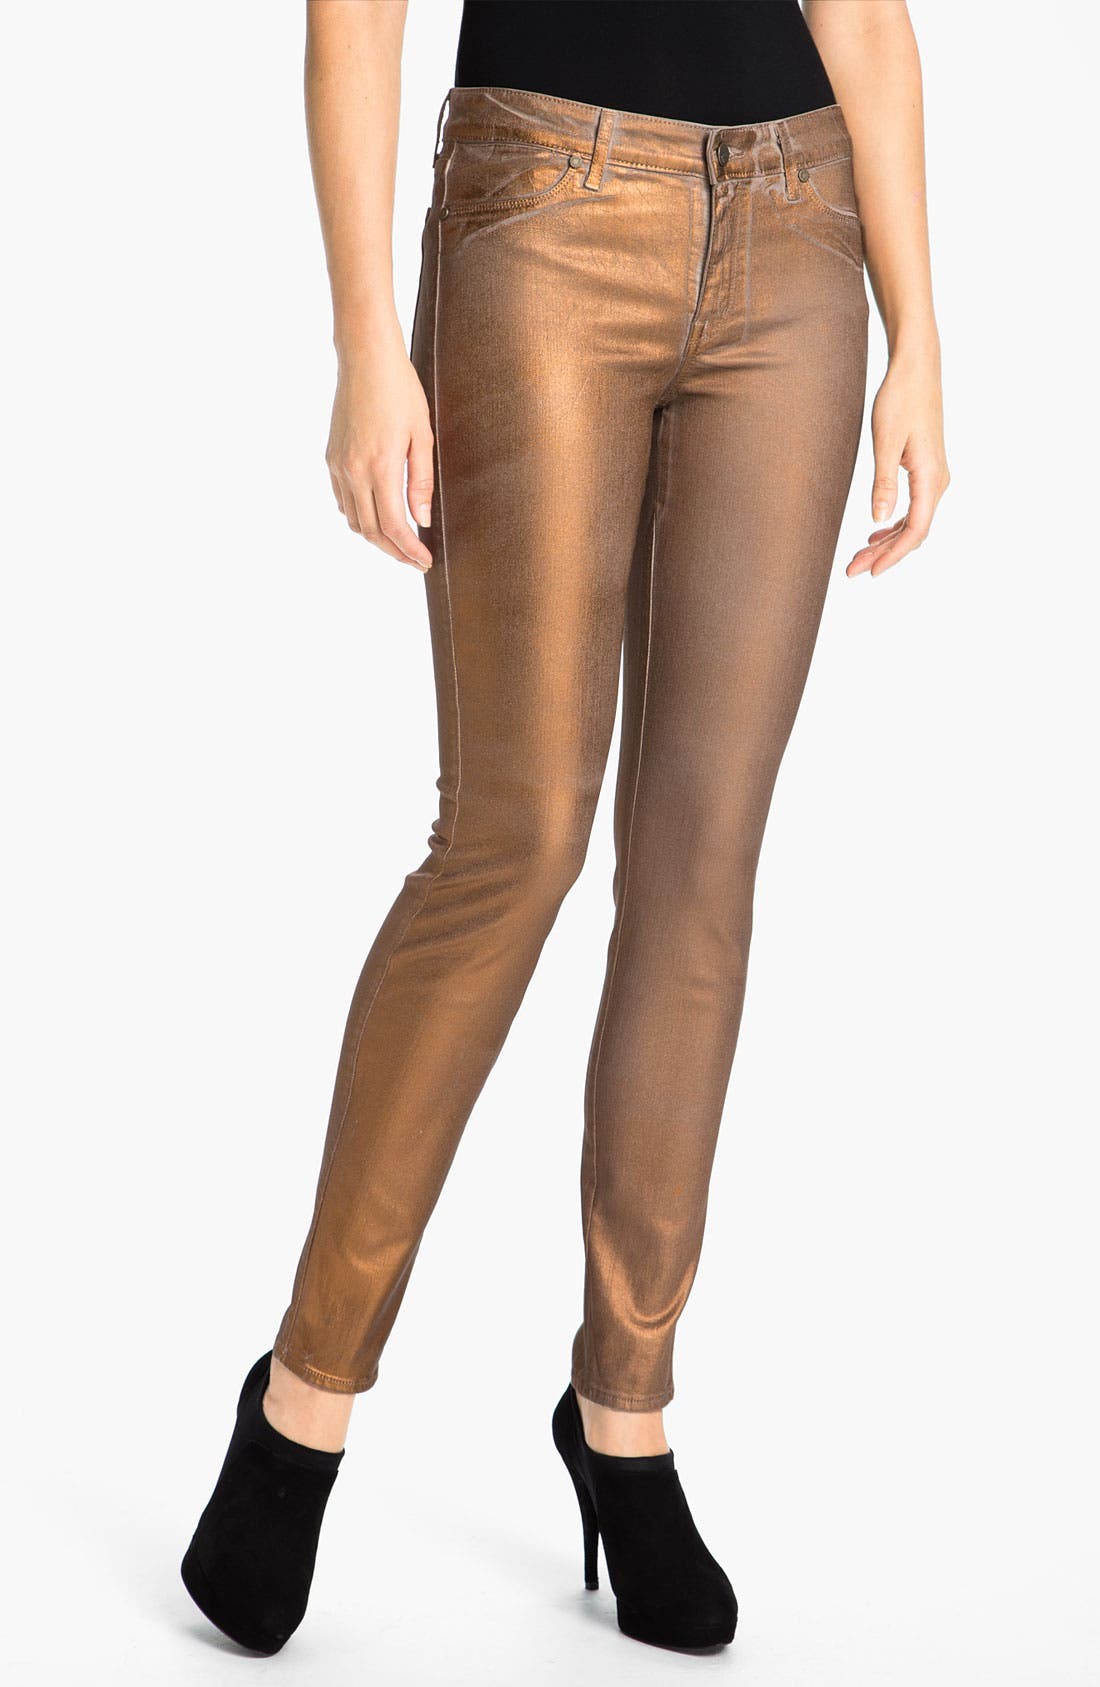 Main Image - CJ by Cookie Johnson 'Joy' Stretch Skinny Jeans (Champagne Dust)